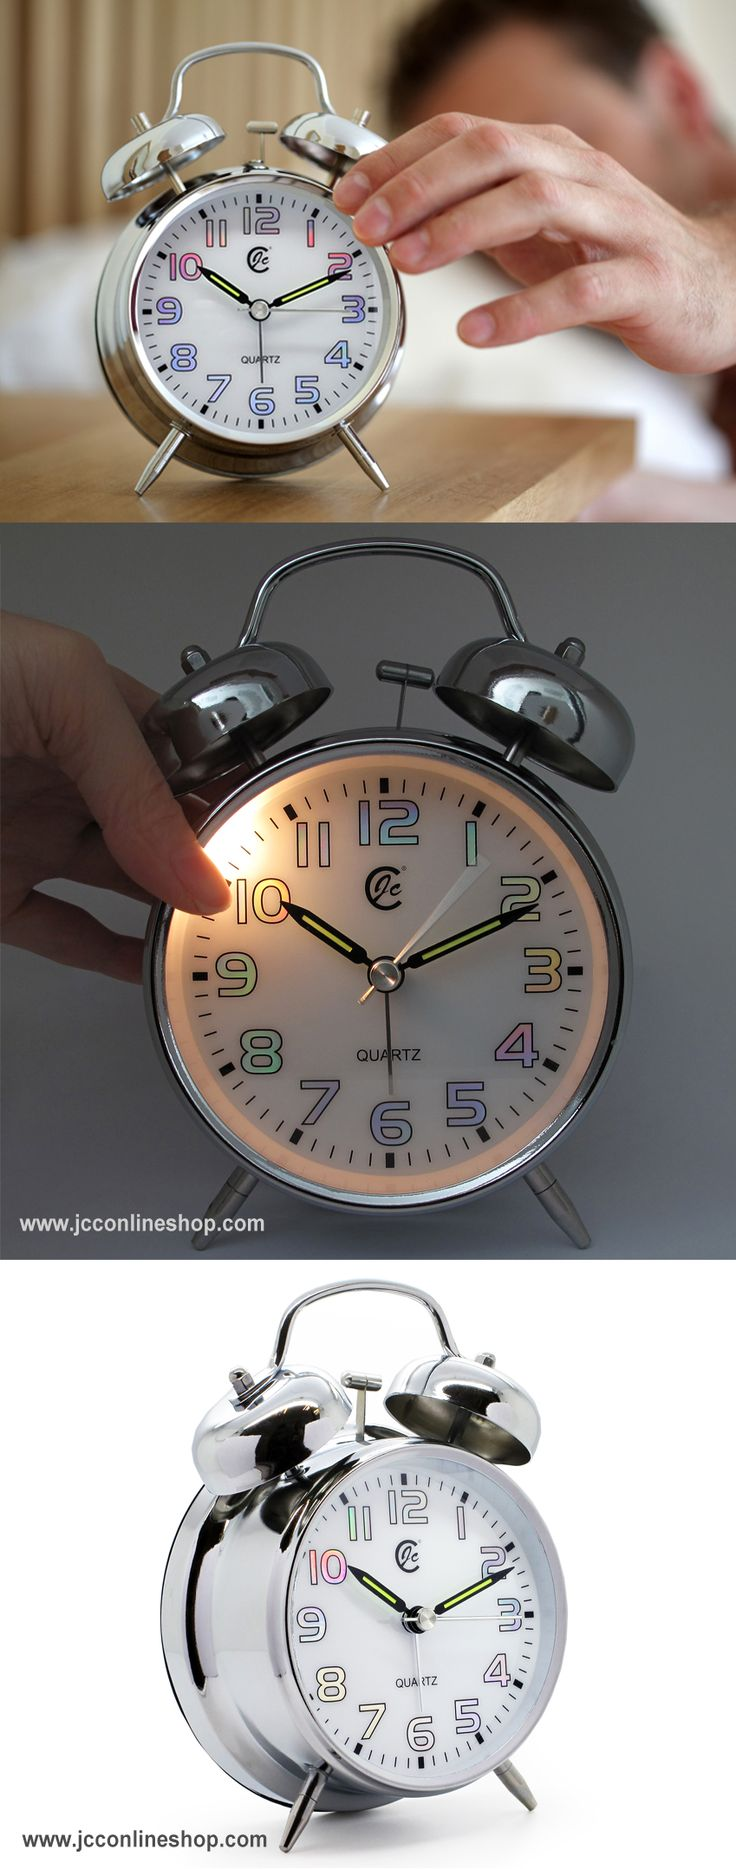 "JCC 4"" Retro Twin bell Non Ticking Analog Alarm Clock  #jcc #alarm #clock #twin #bell #analog #retro #vintage #classic #bedside #bedroom"